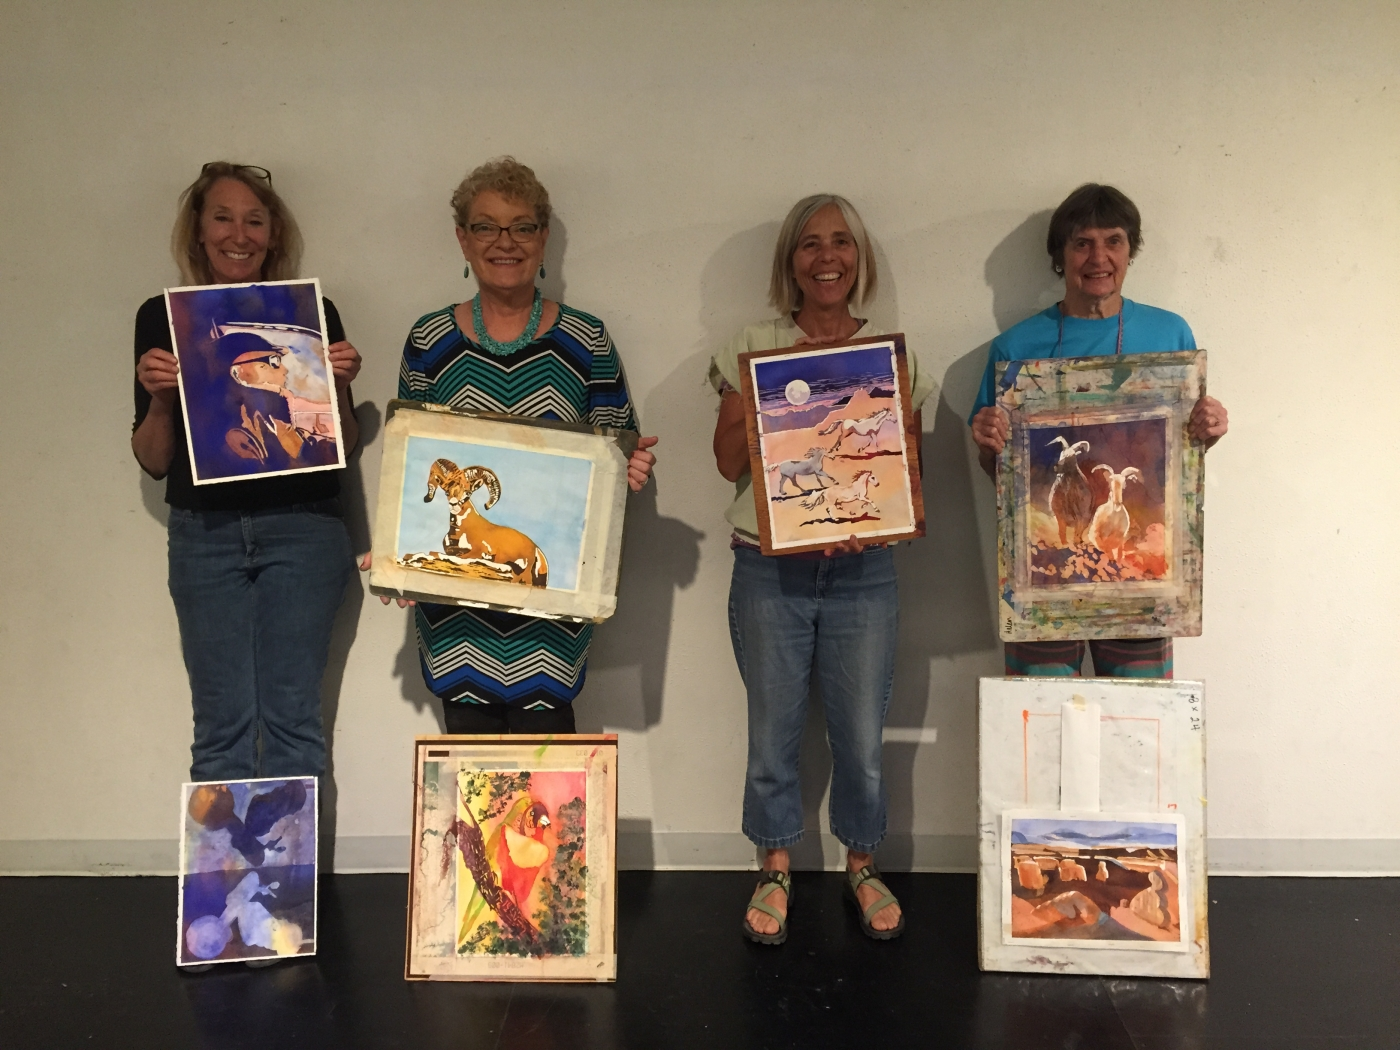 Each participant finished two paintings and had a third painting in progress to explore and finish at home.